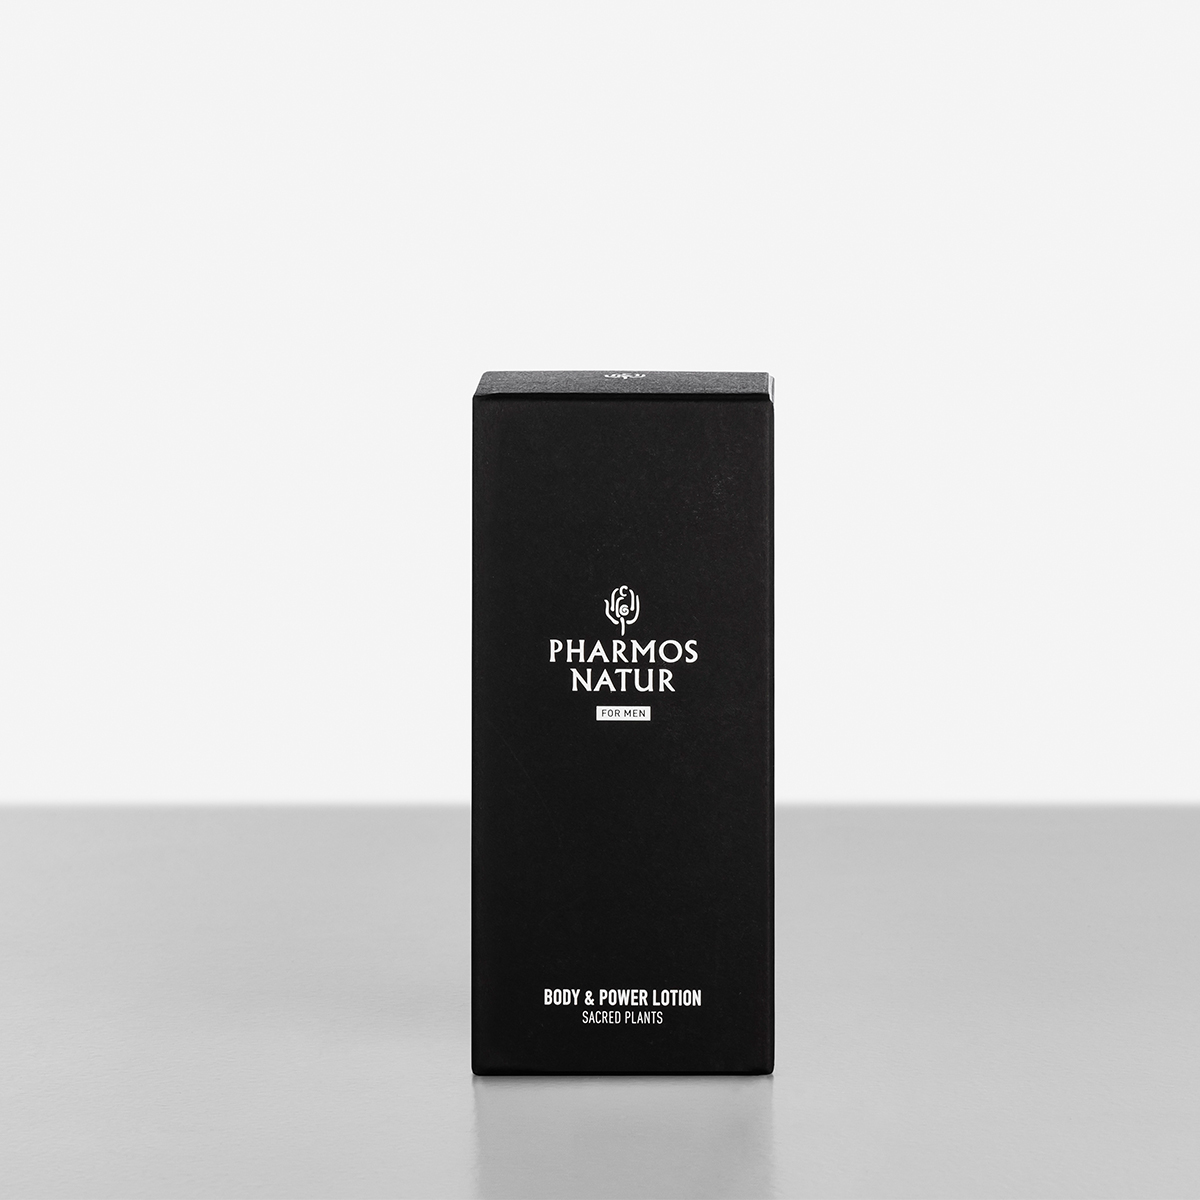 schwarze Verpackung Body and Power Lotion Produktbild